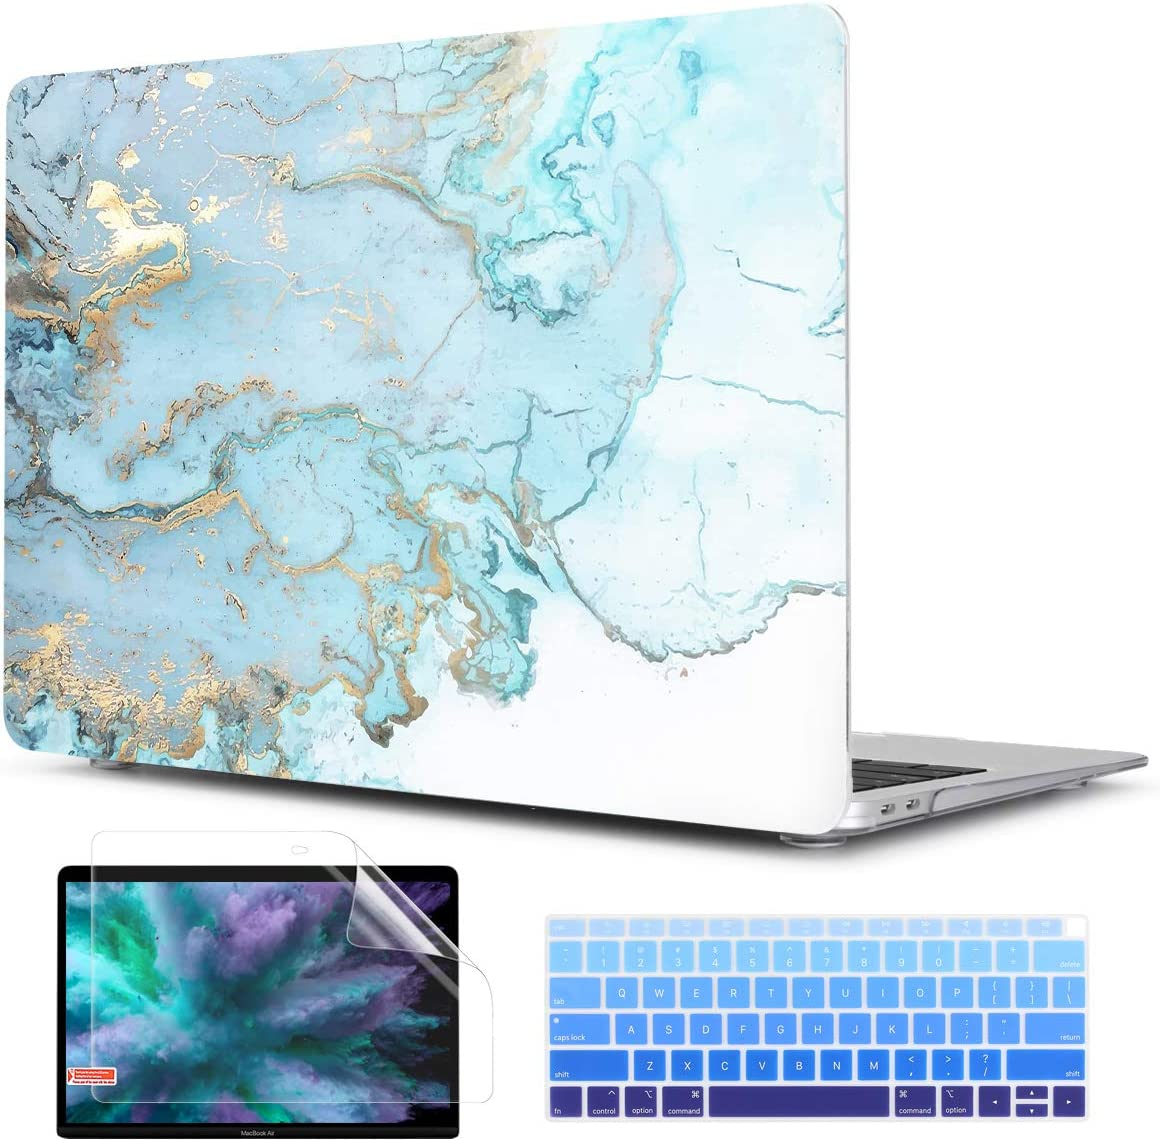 TwoL Ultra Slim Hard Shell Case Keyboard Skin and Screen Protector for New MacBook Air 13 inch 2018 2019 Model A1932 Earth